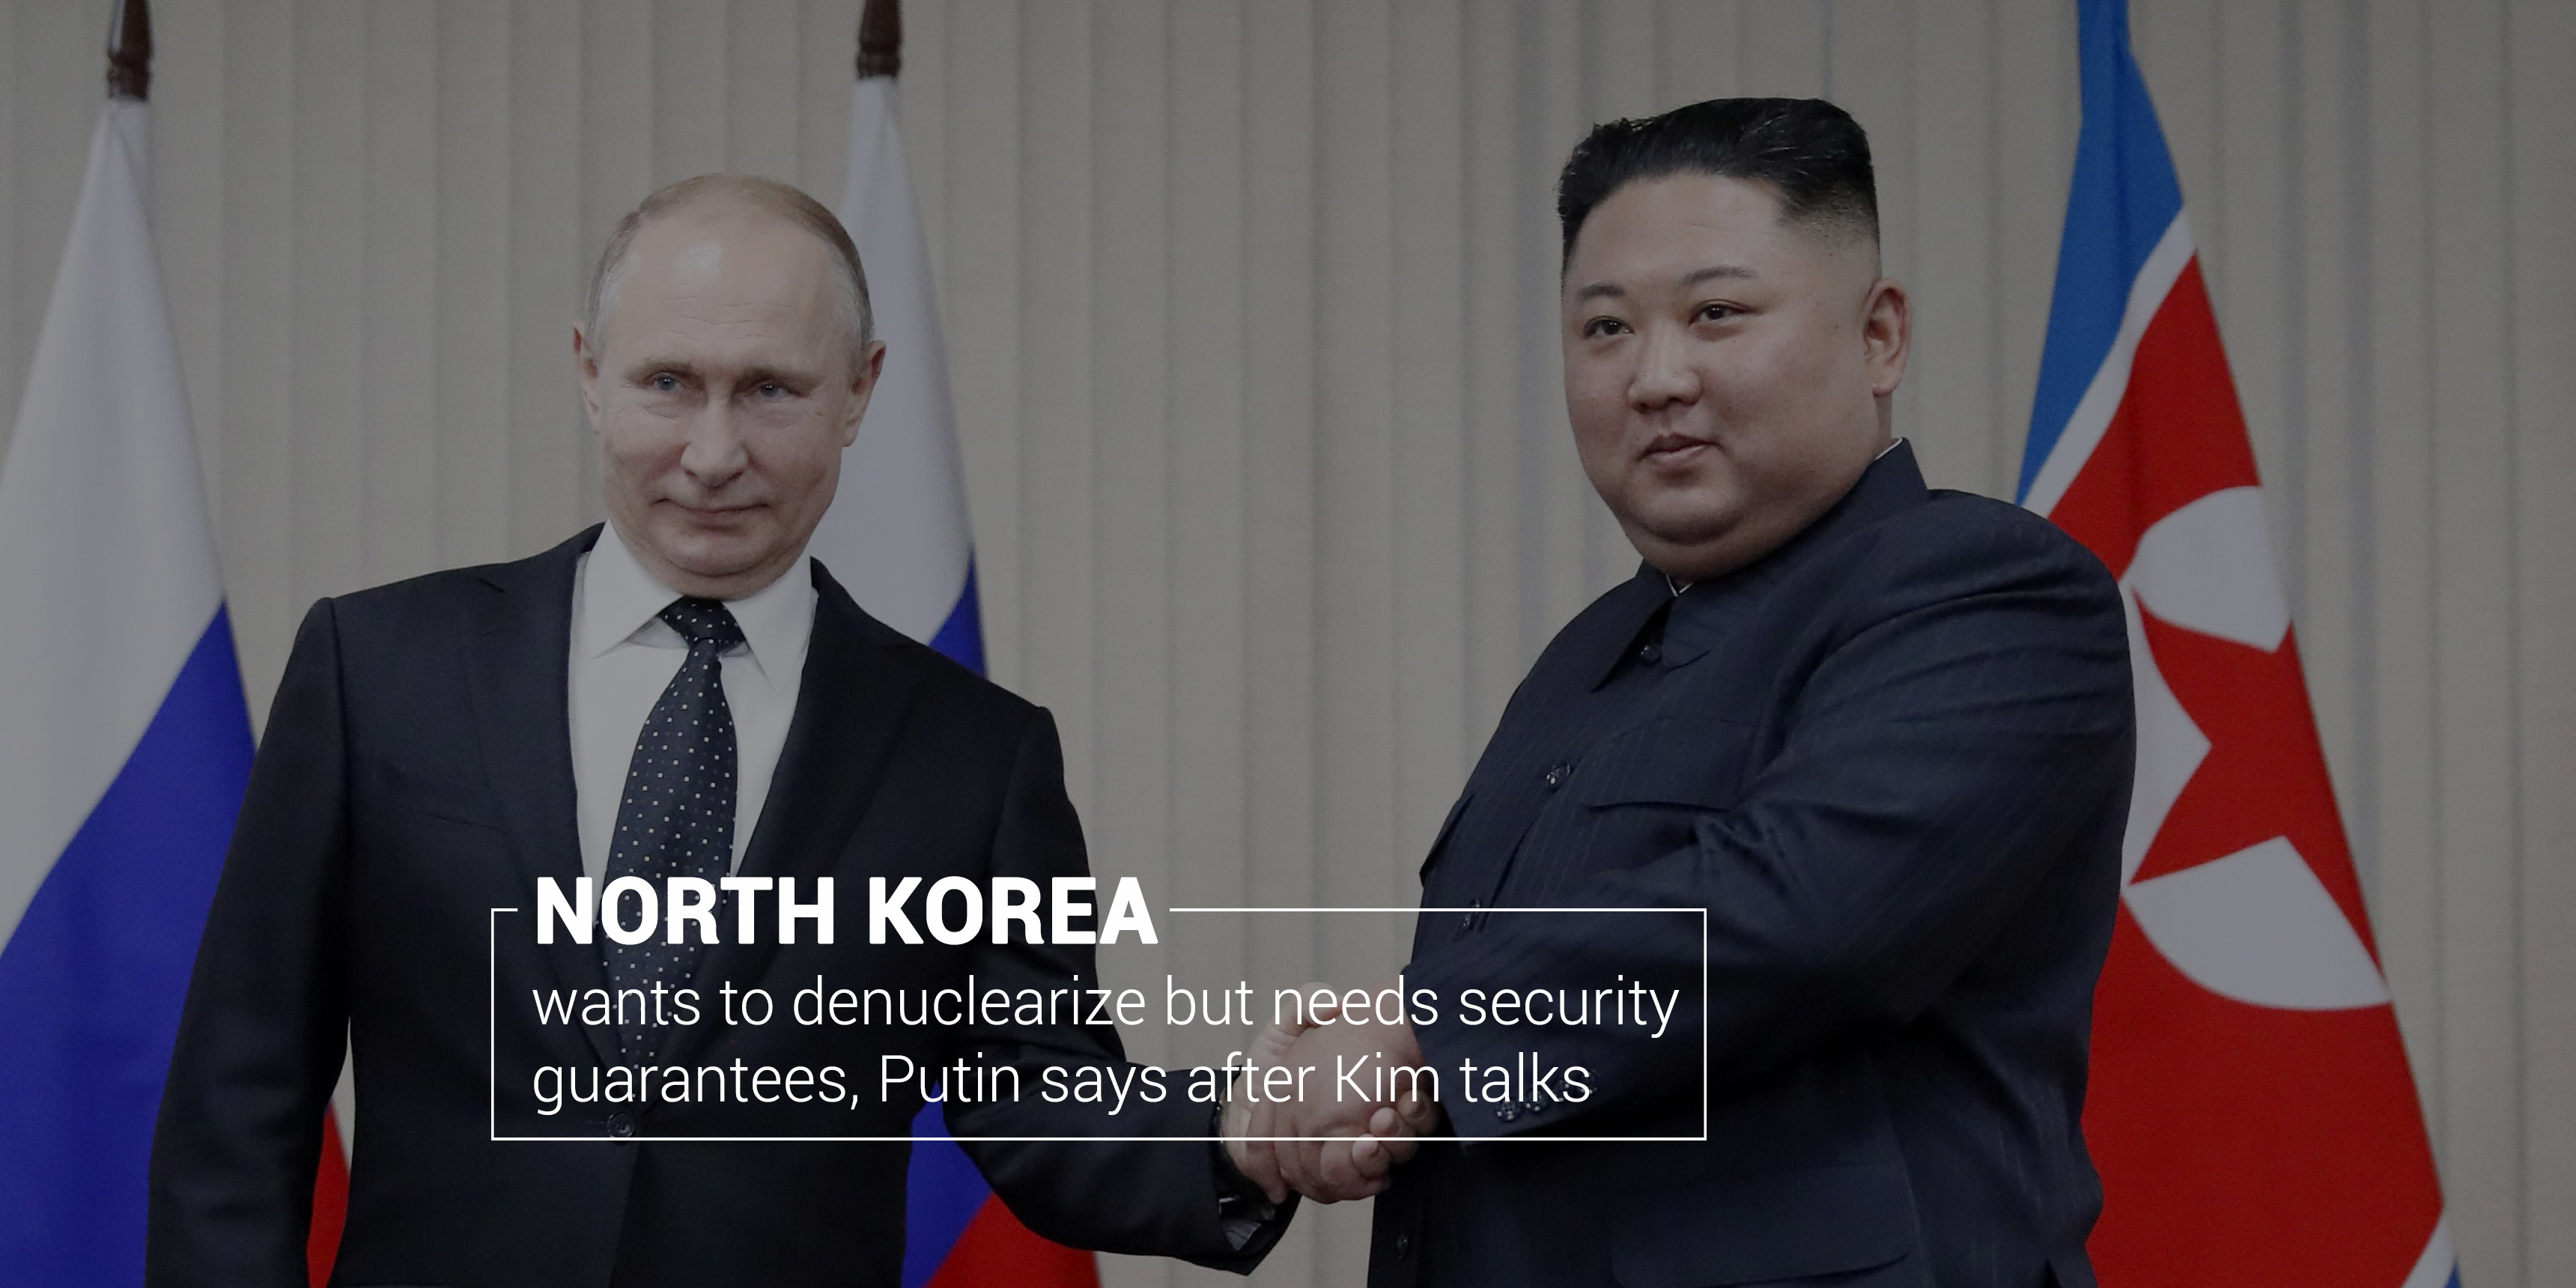 Its a wish of North Korea to denuclearize but wants Security Guarantee – Putin